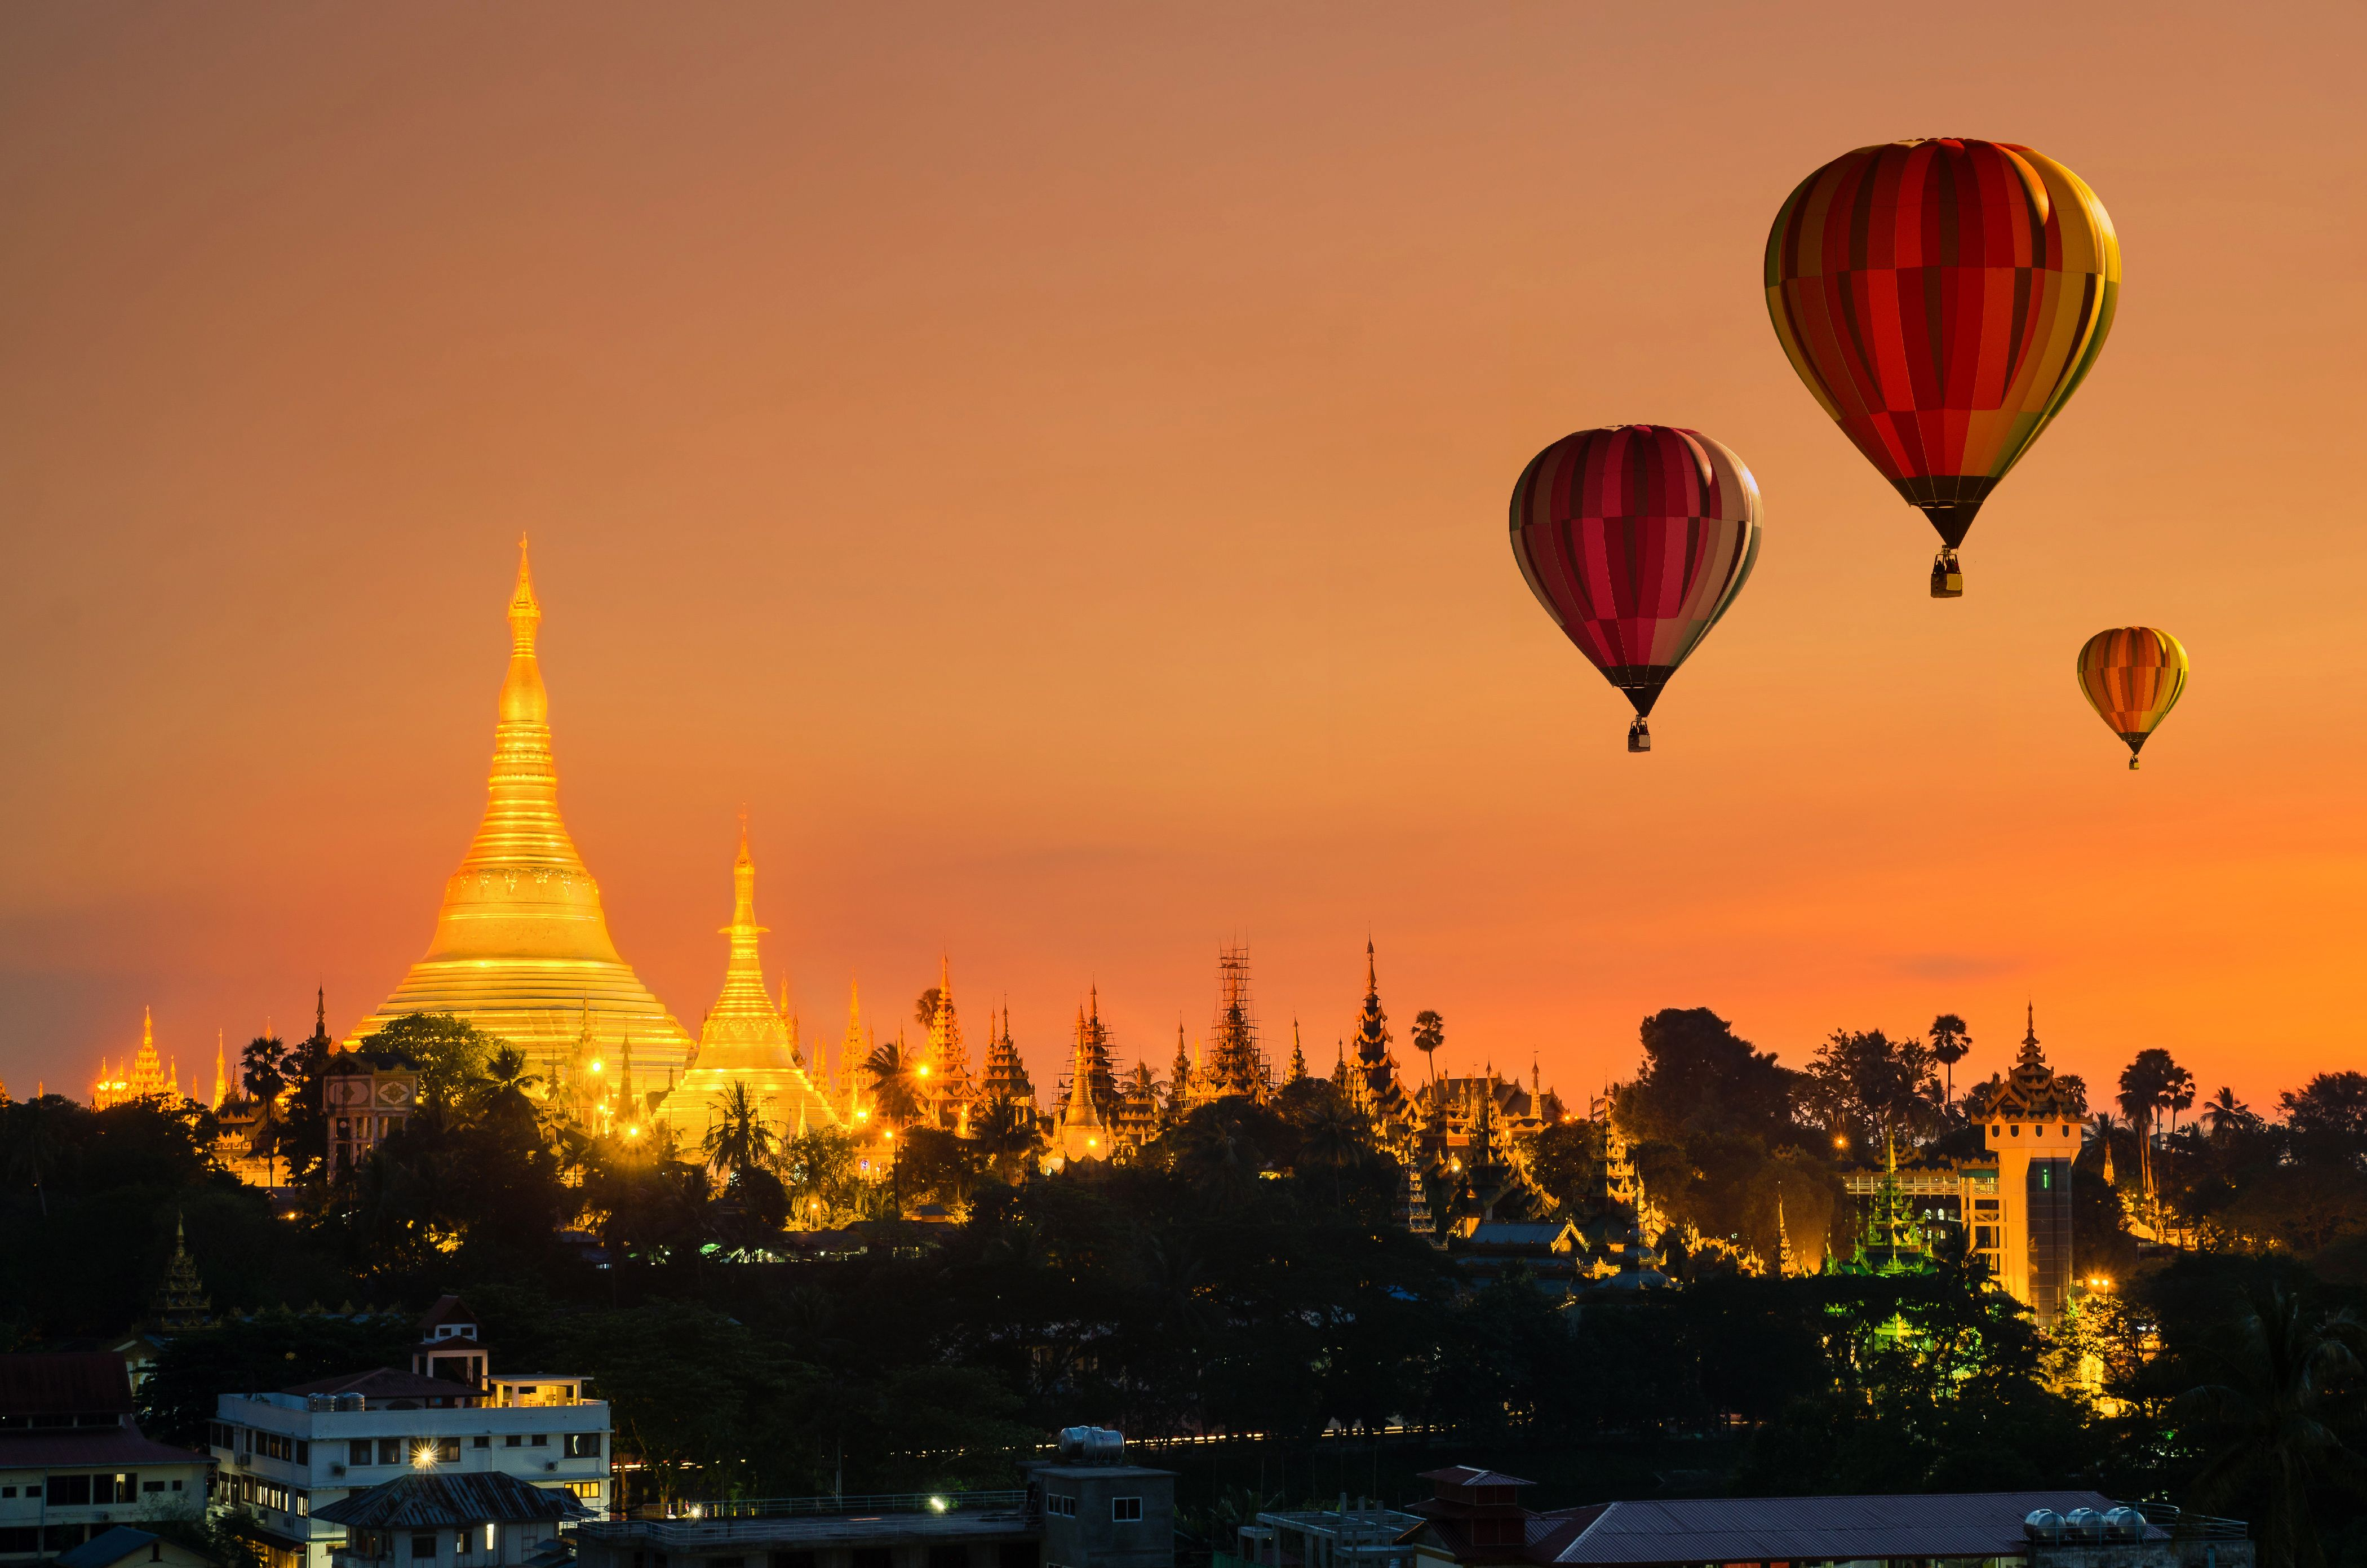 Skyline of former Myanmar capital Yangon with Shwedagon Pagoda and hot air balloons